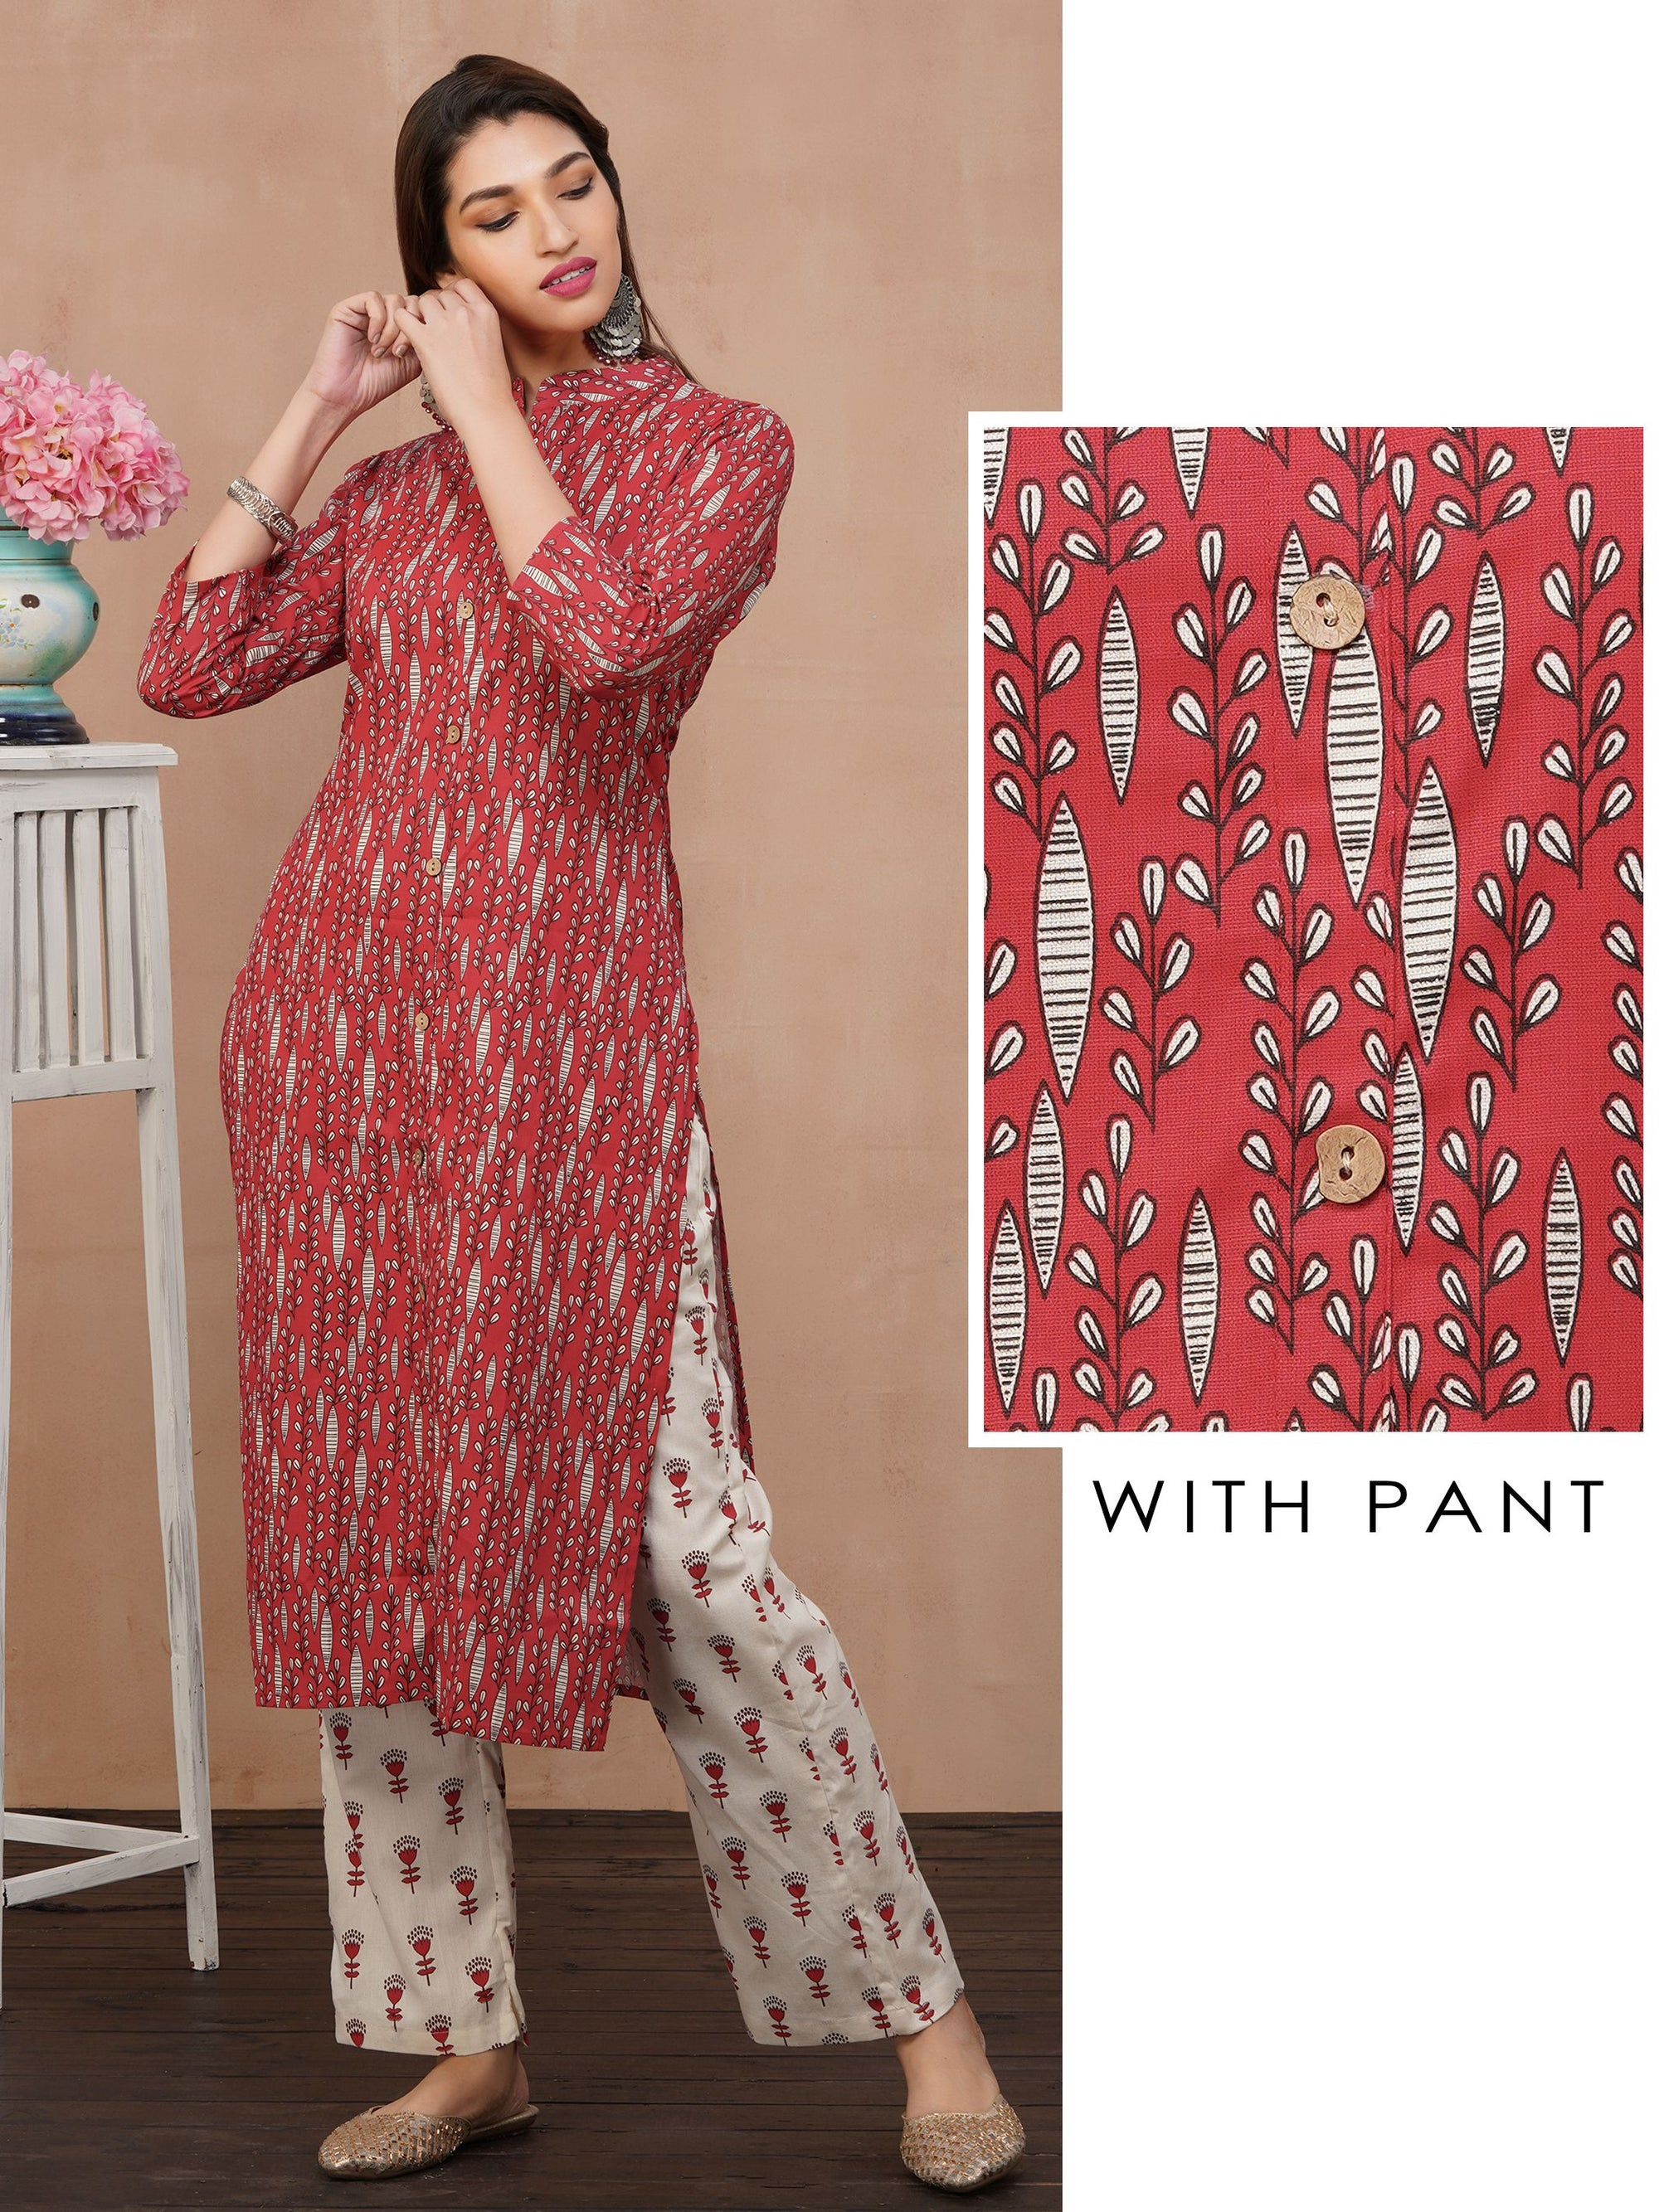 Pinnate Leaf Printed Kurti with Retro Tulip Printed Pant Set